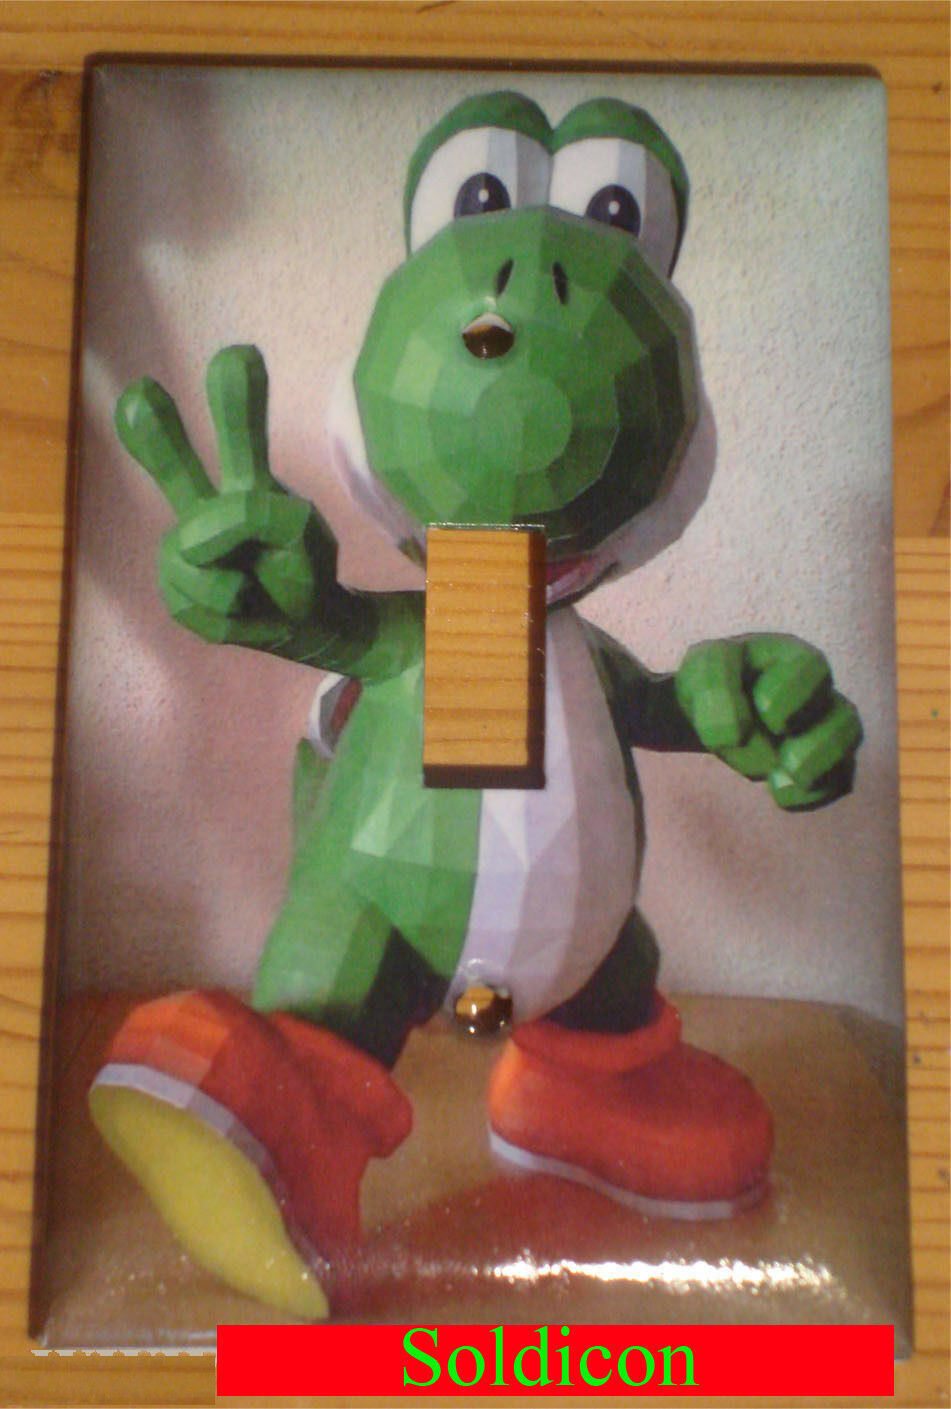 Super Mario Yoshi Light Switch and Duplex Outlet Cover Plate